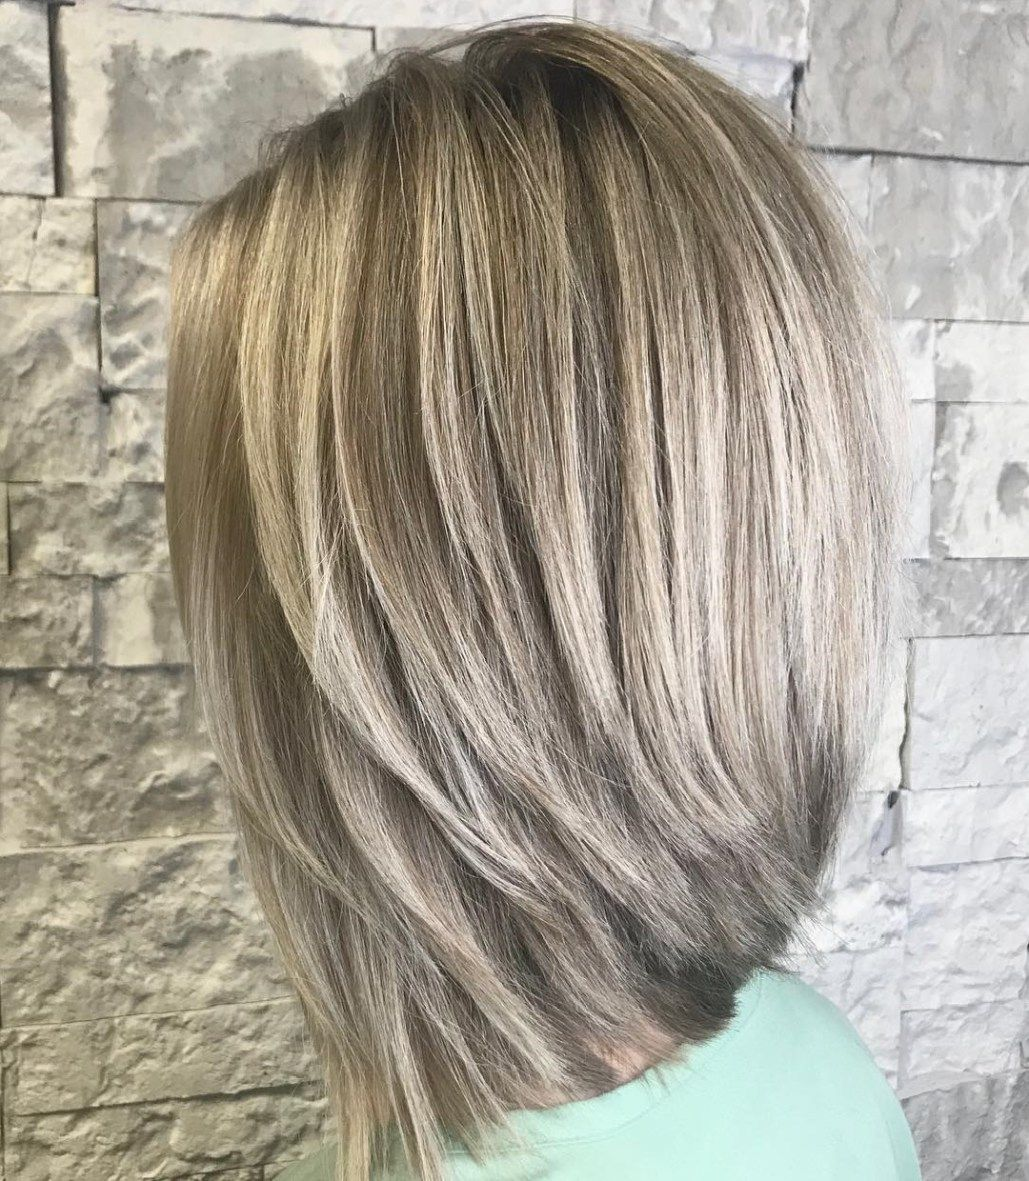 Straight Thick Inverted Lob Inverted Long Bob Bob Hairstyles Long Bob Hairstyles